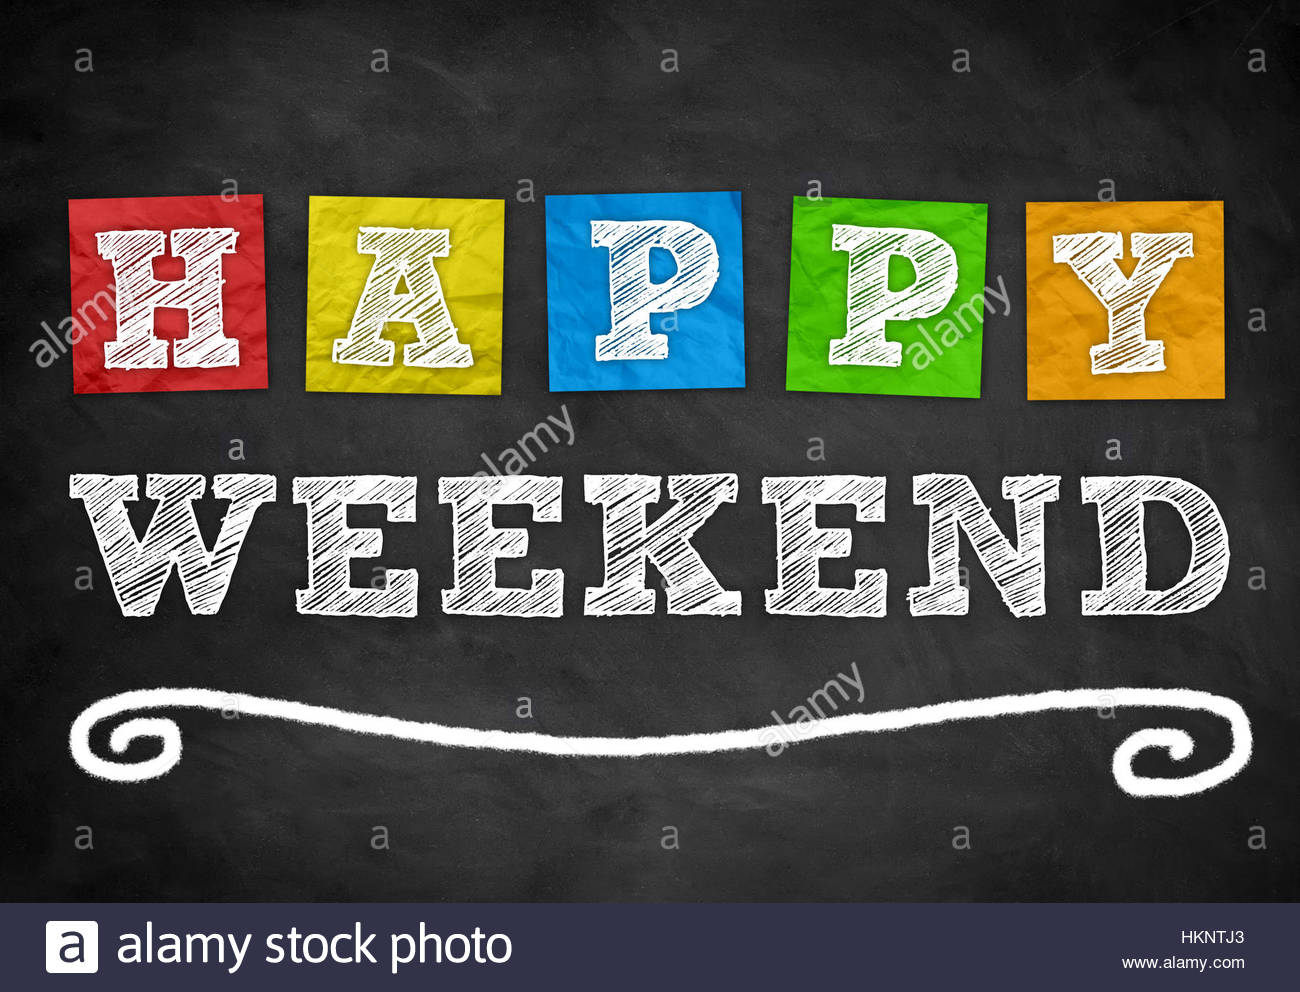 Happy Weekend - background concept - Stock Image